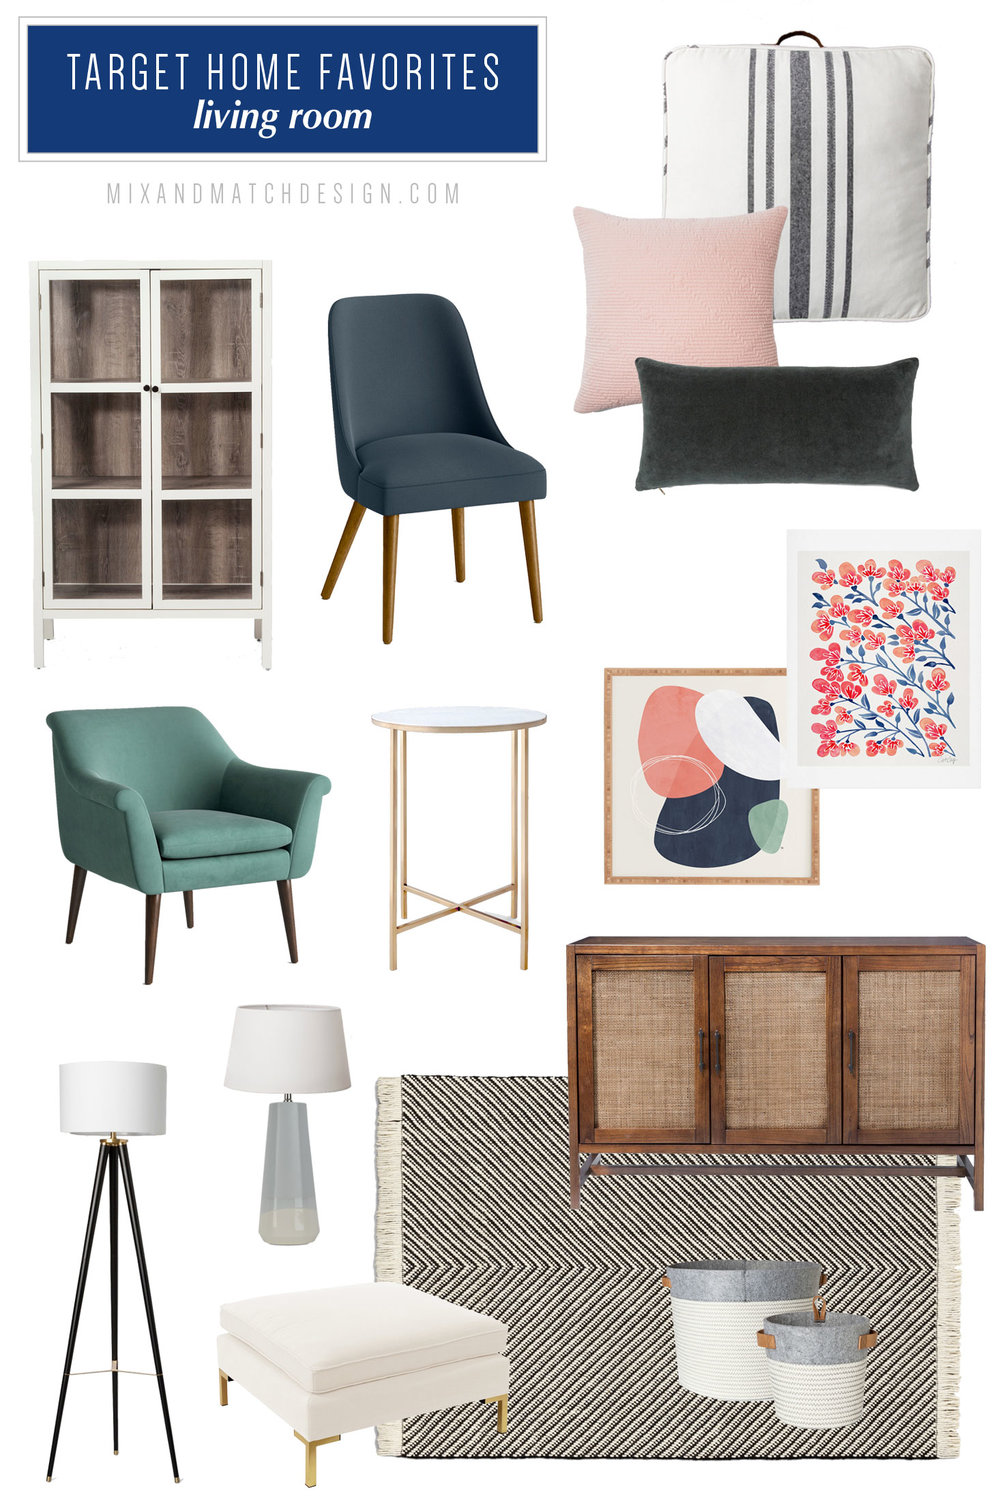 A roundup of the furniture and decor that caught my eye recently at Target. If you're looking for recommendations for affordable items for your living room, be sure to check out this blog post with finds from Target brands Threshold, Project62, and Opalhouse.